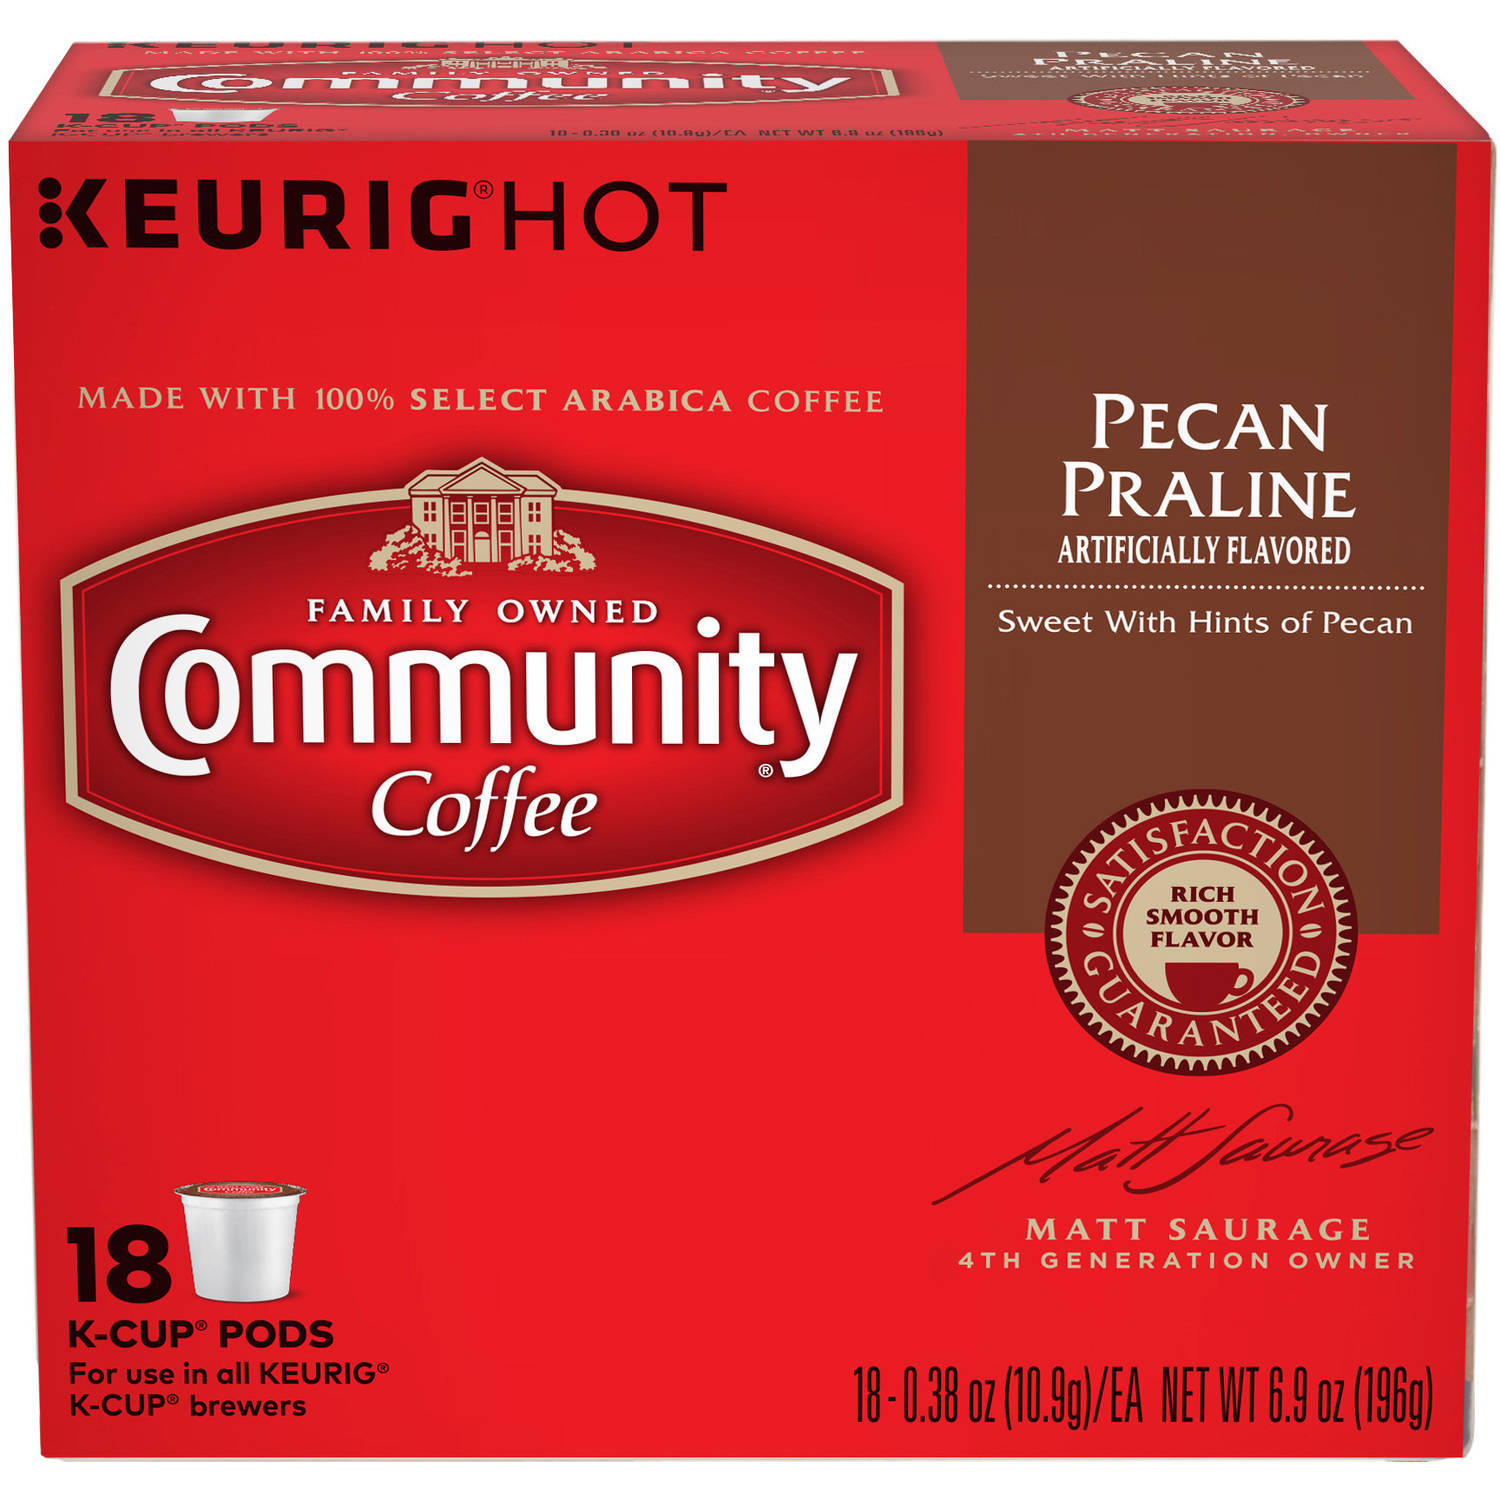 Community Coffee Pecan Praline Coffee K-Cup Pods, .38 oz, 18 count